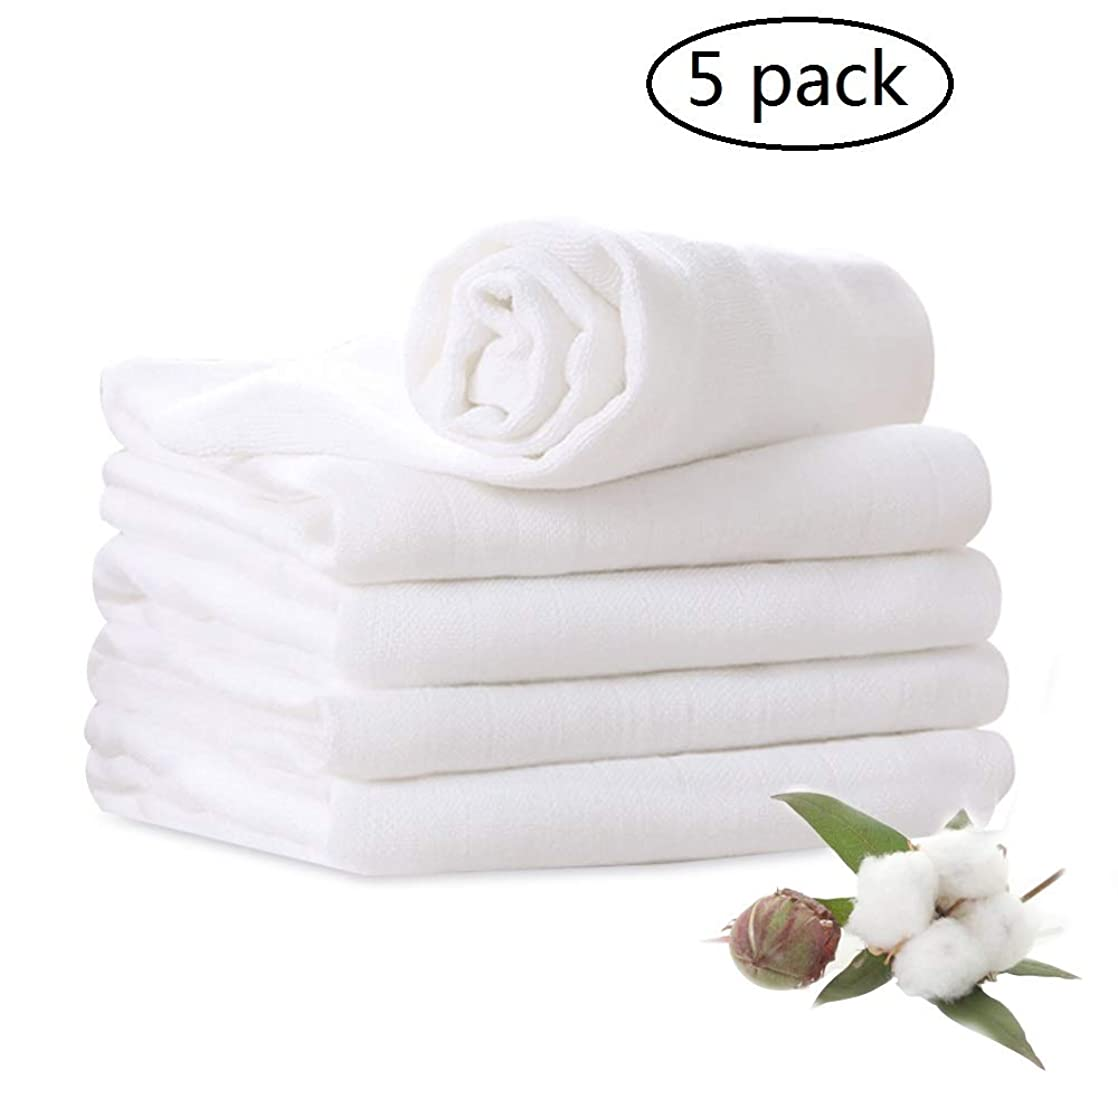 Muslin Burp Cloths 100% Cotton 6 Layers Extra Absorbent 5 Pack Large 14